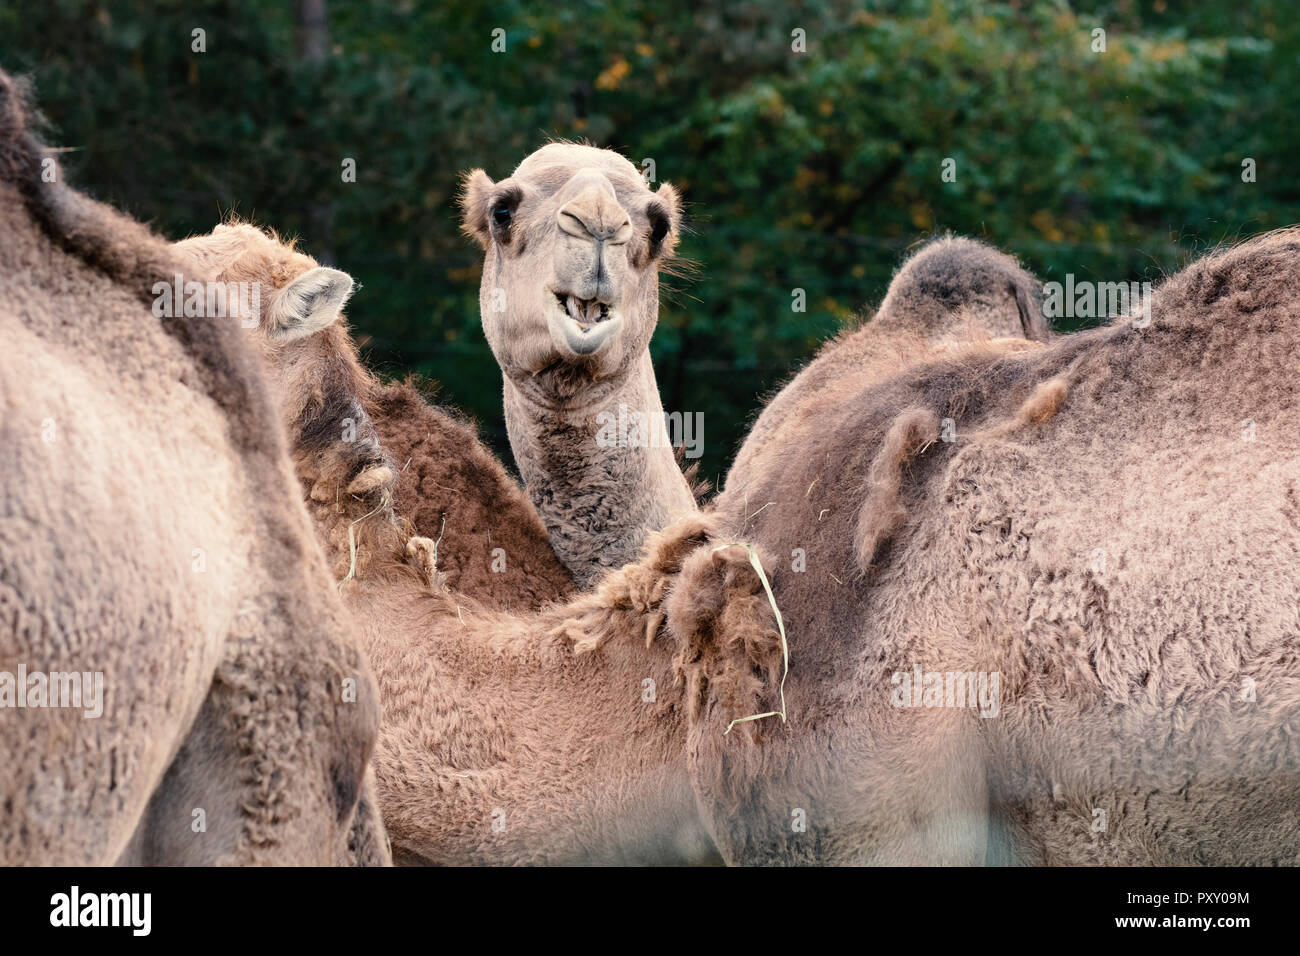 Camel, Camels standing in group Stock Photo